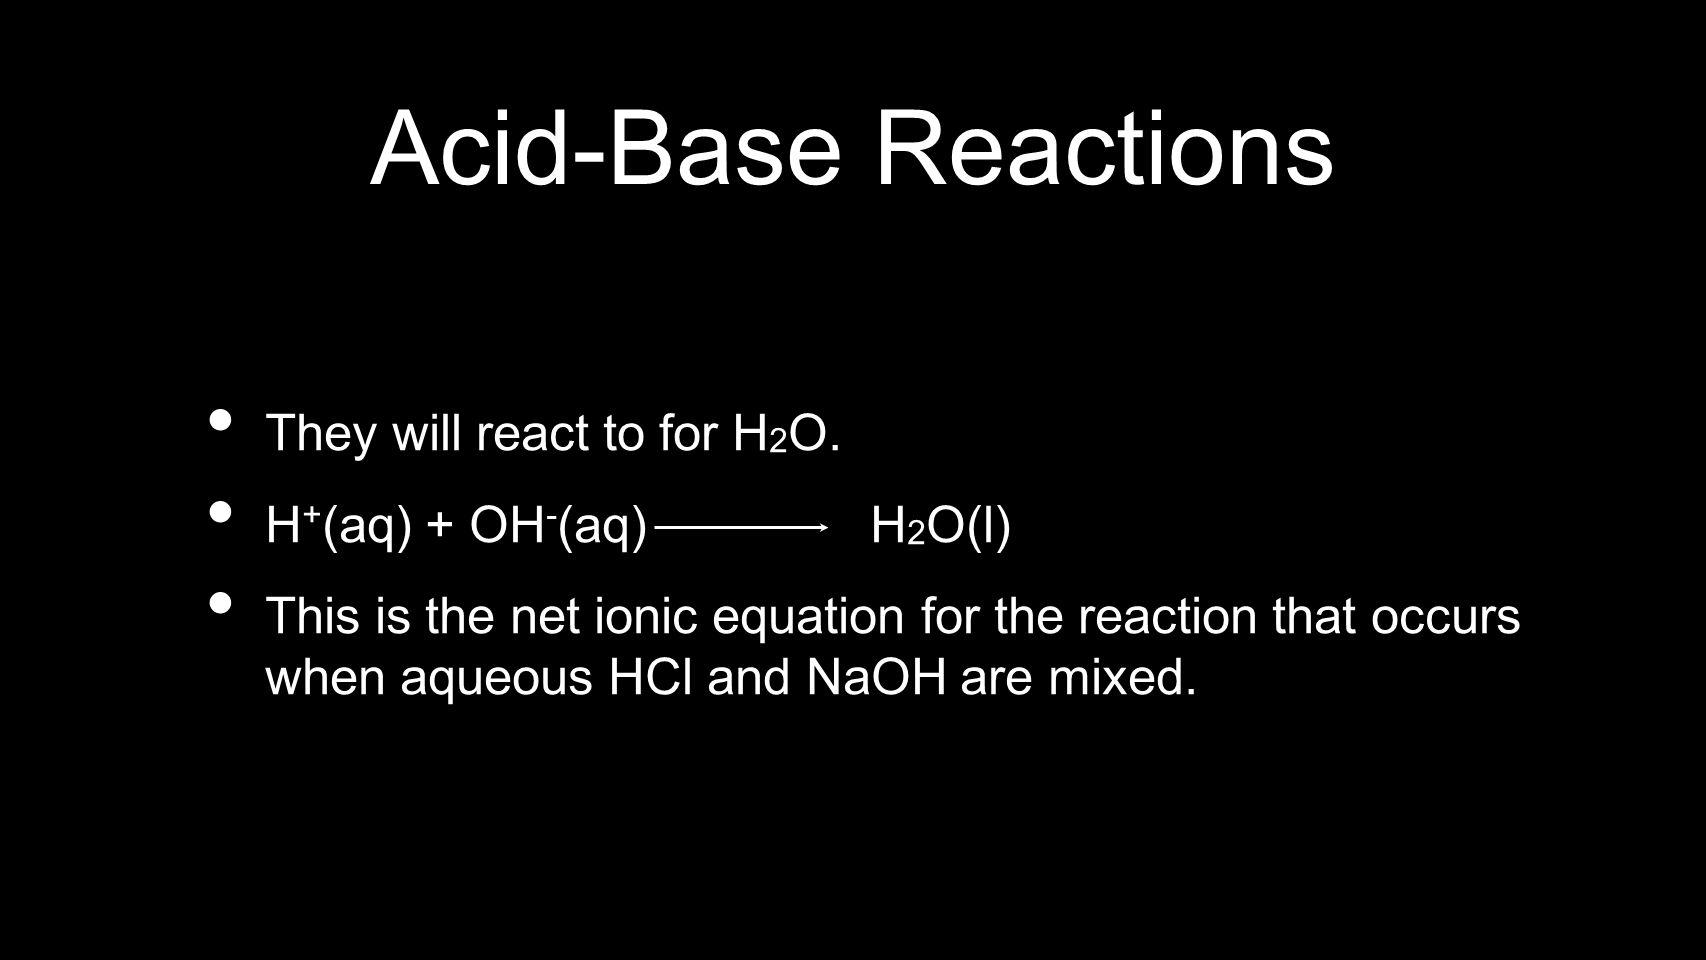 Acid-Base Reactions They will react to for H 2 O. H + (aq) + OH - (aq) H 2 O(l) This is the net ionic equation for the reaction that occurs when aqueo